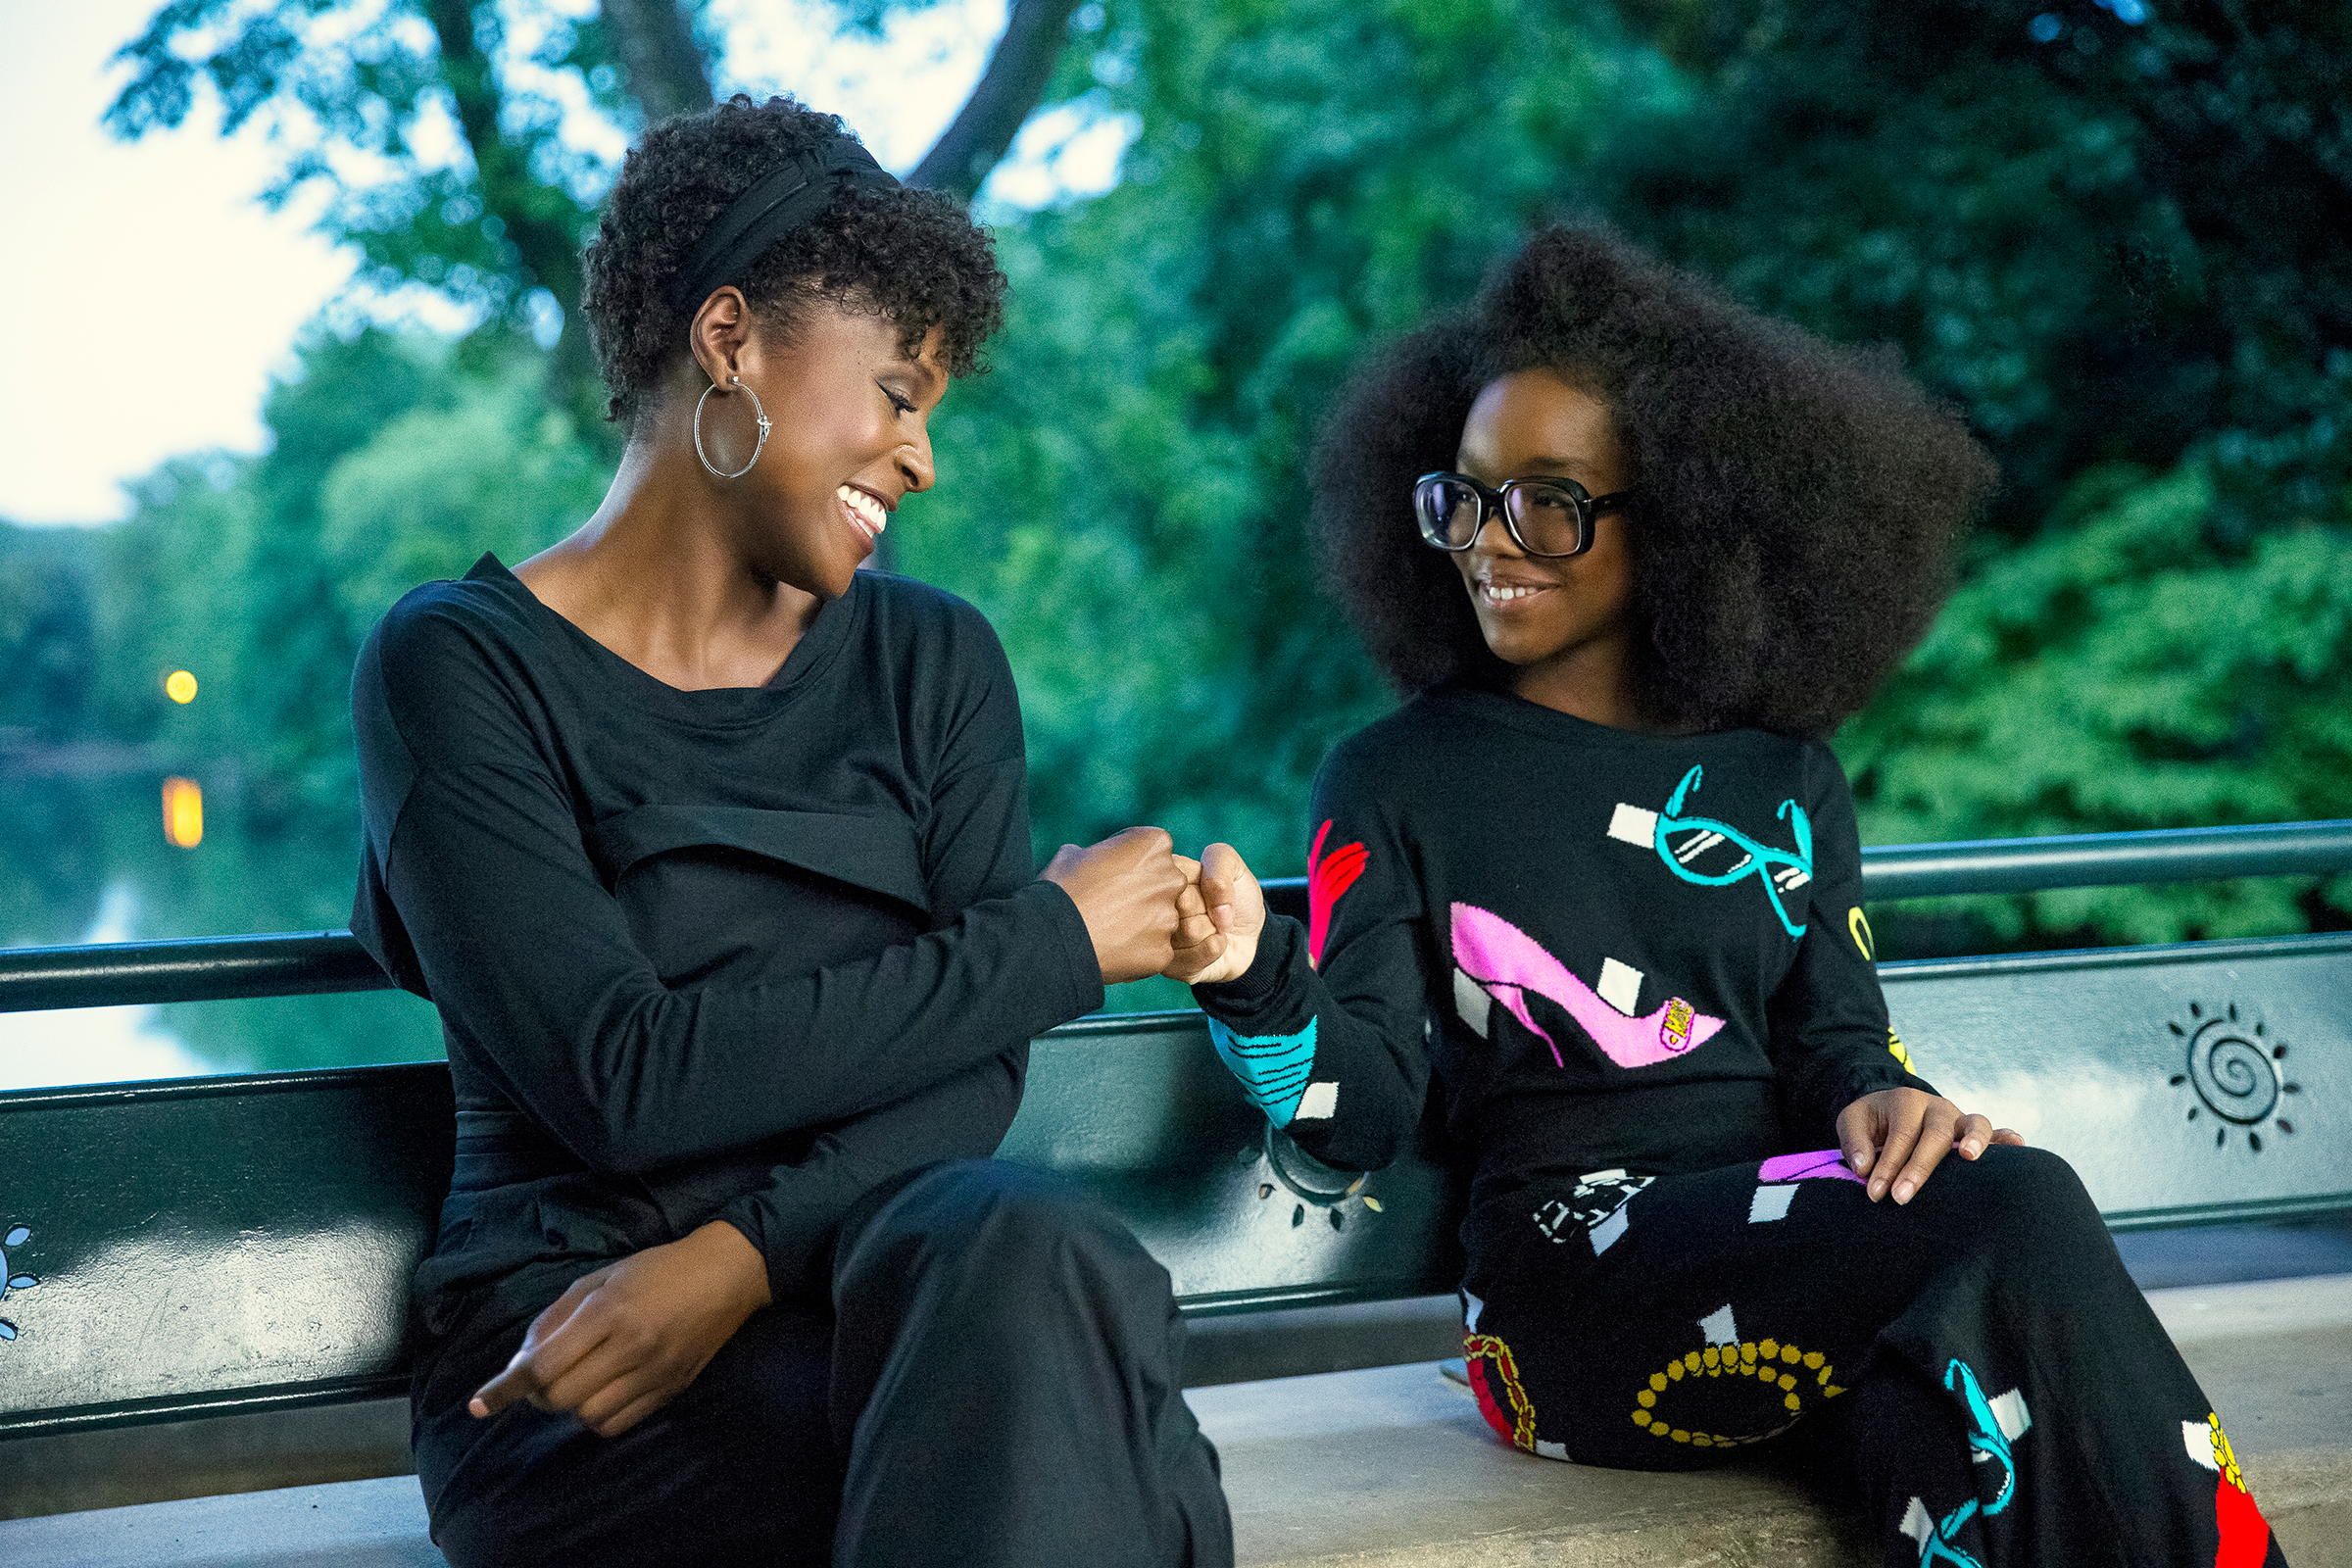 """(from left) April Williams (Issa Rae) and little Jordan Sanders (Marsai Martin) in """"Little,"""" co-written and directed by Tina Gordon."""